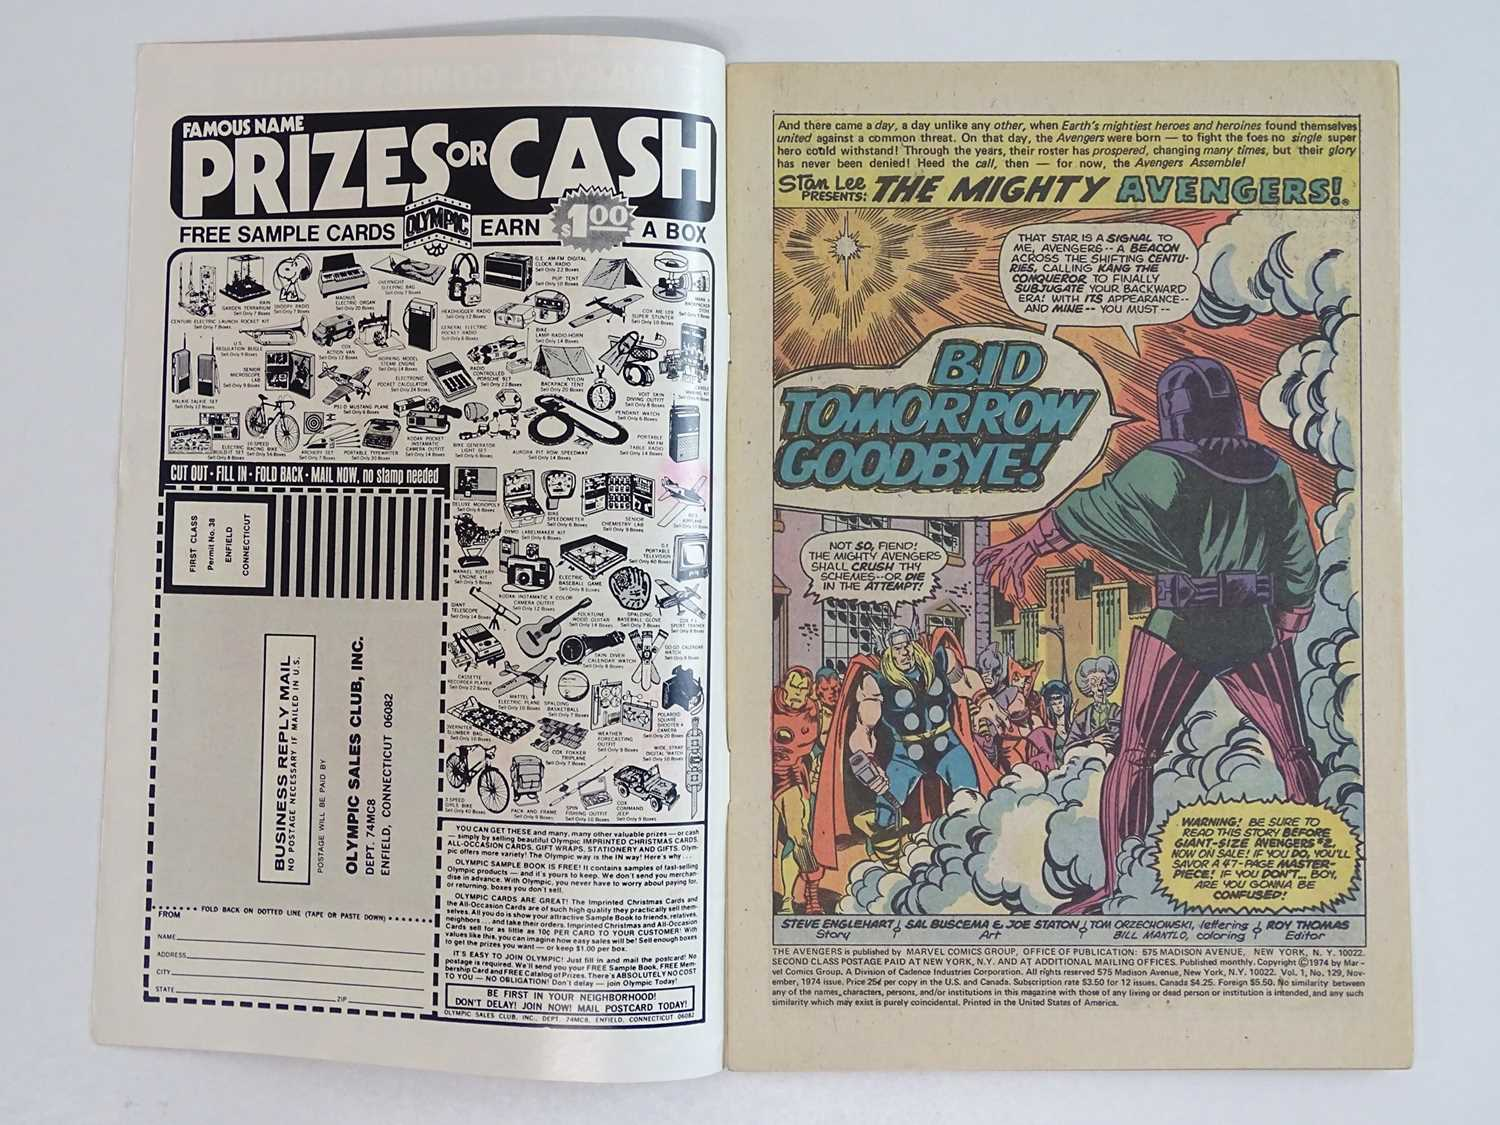 AVENGERS #129 - (1974 - MARVEL) - Classic Kang Cover + Kang the Conqueror, Ram-Tut appearances - Ron - Image 3 of 9